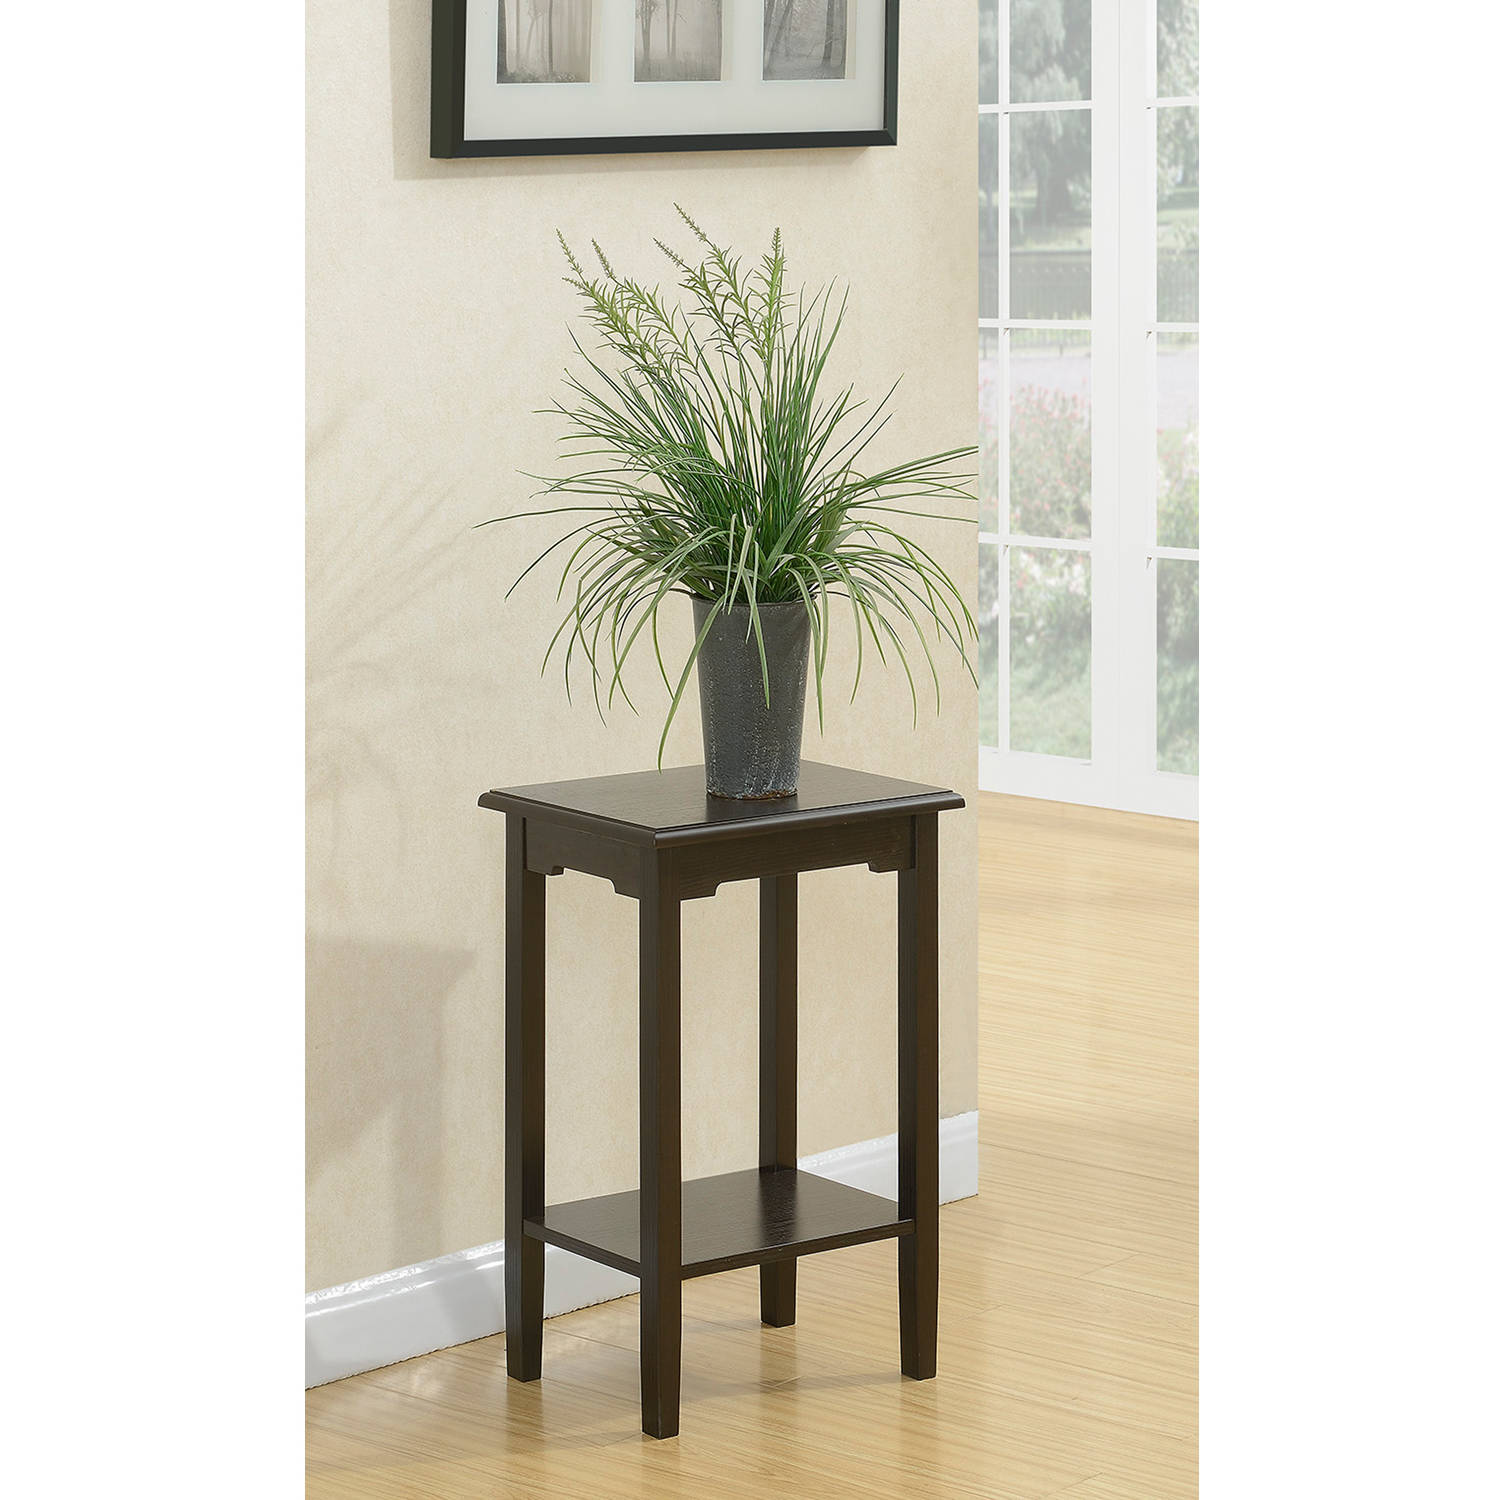 "Convenience Concepts American Heritage 24"" Plant Stand by CONVENIENCE CONCEPTS, INC"